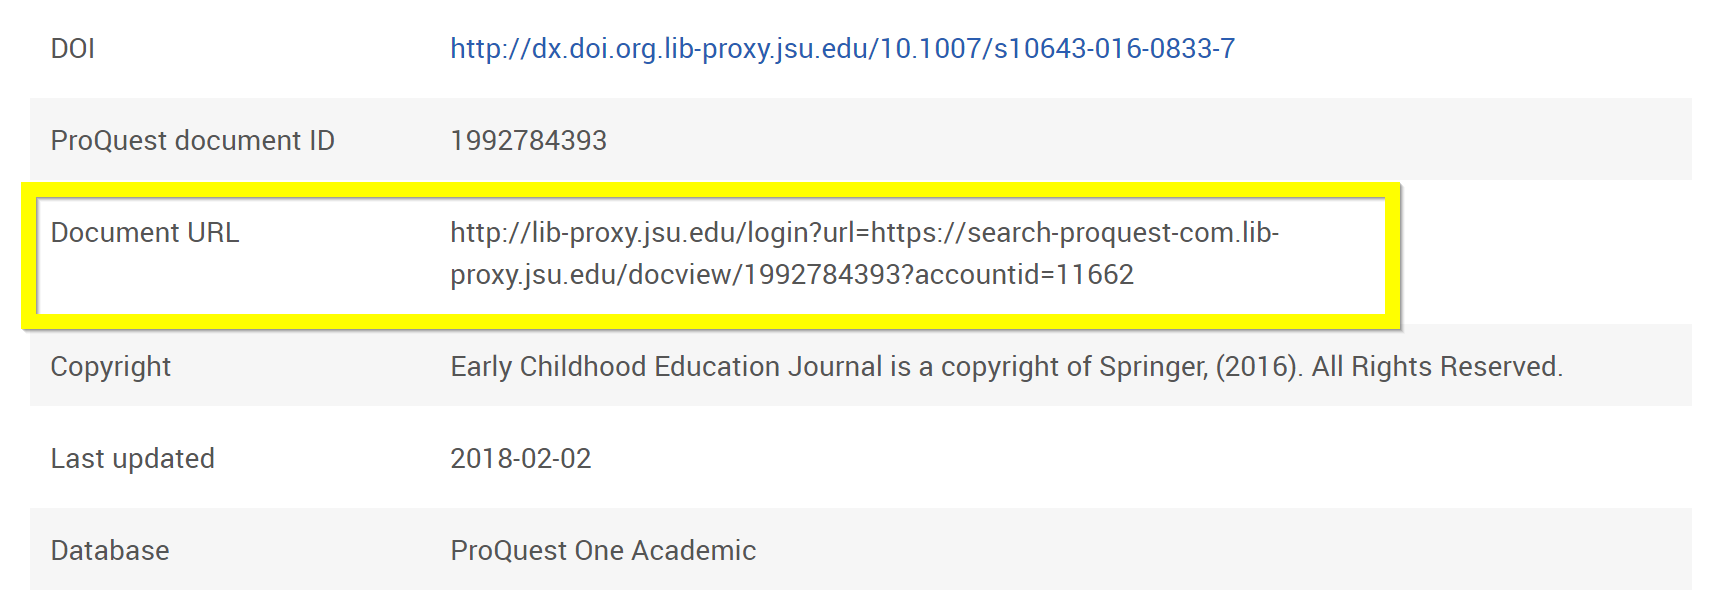 Screenshot of ProQuest Document URL section